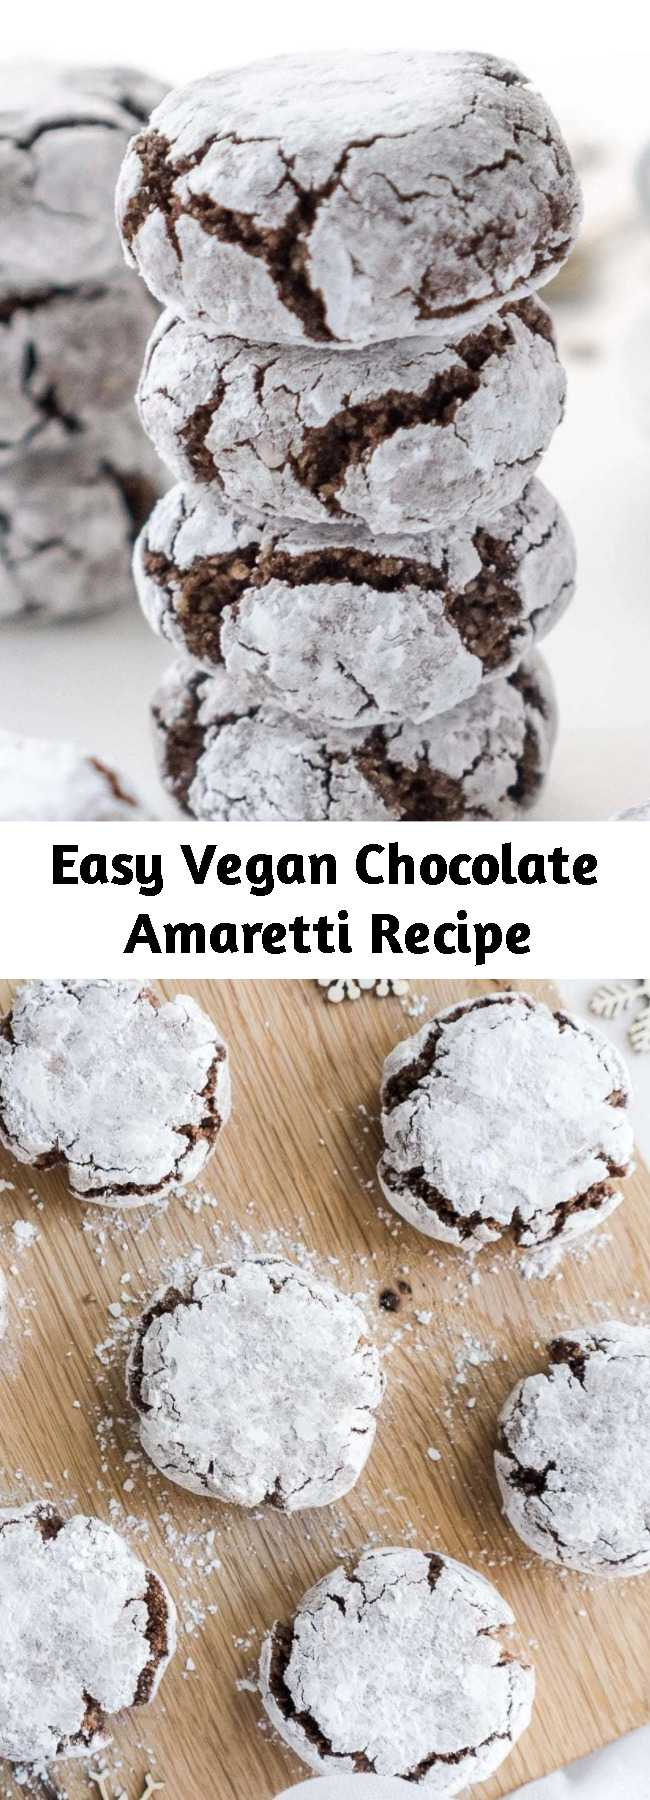 Easy Vegan Chocolate Amaretti Recipe - The perfect homemade cookies for Christmas! These irresistible vegan, gluten-free chocolate amaretti are super easy to make, crunchy on the outside and soft on the inside.